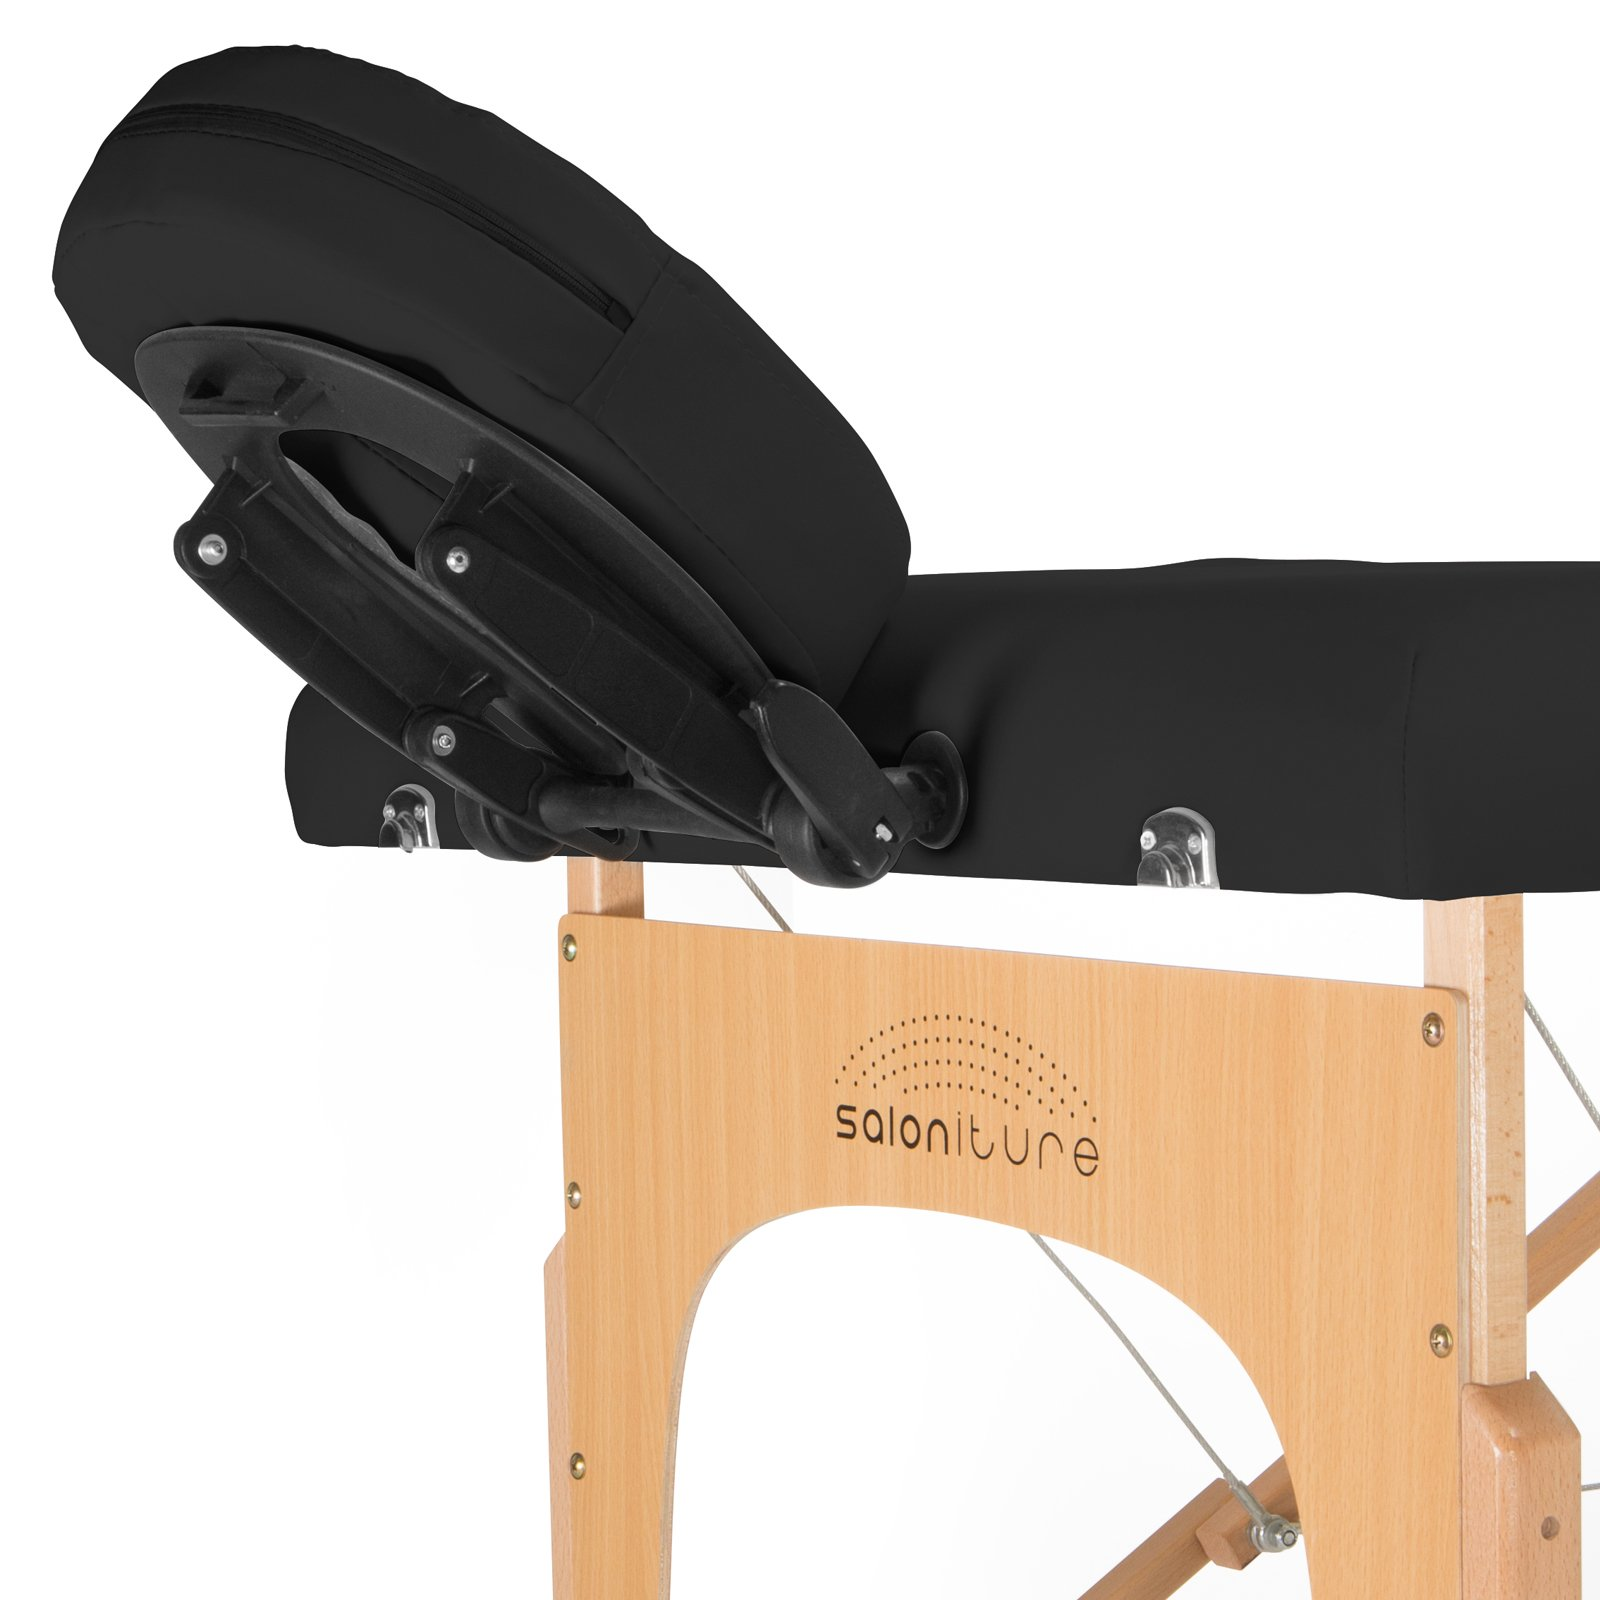 Saloniture Professional Portable Folding Massage Table with Carrying Case - Black by Saloniture (Image #2)